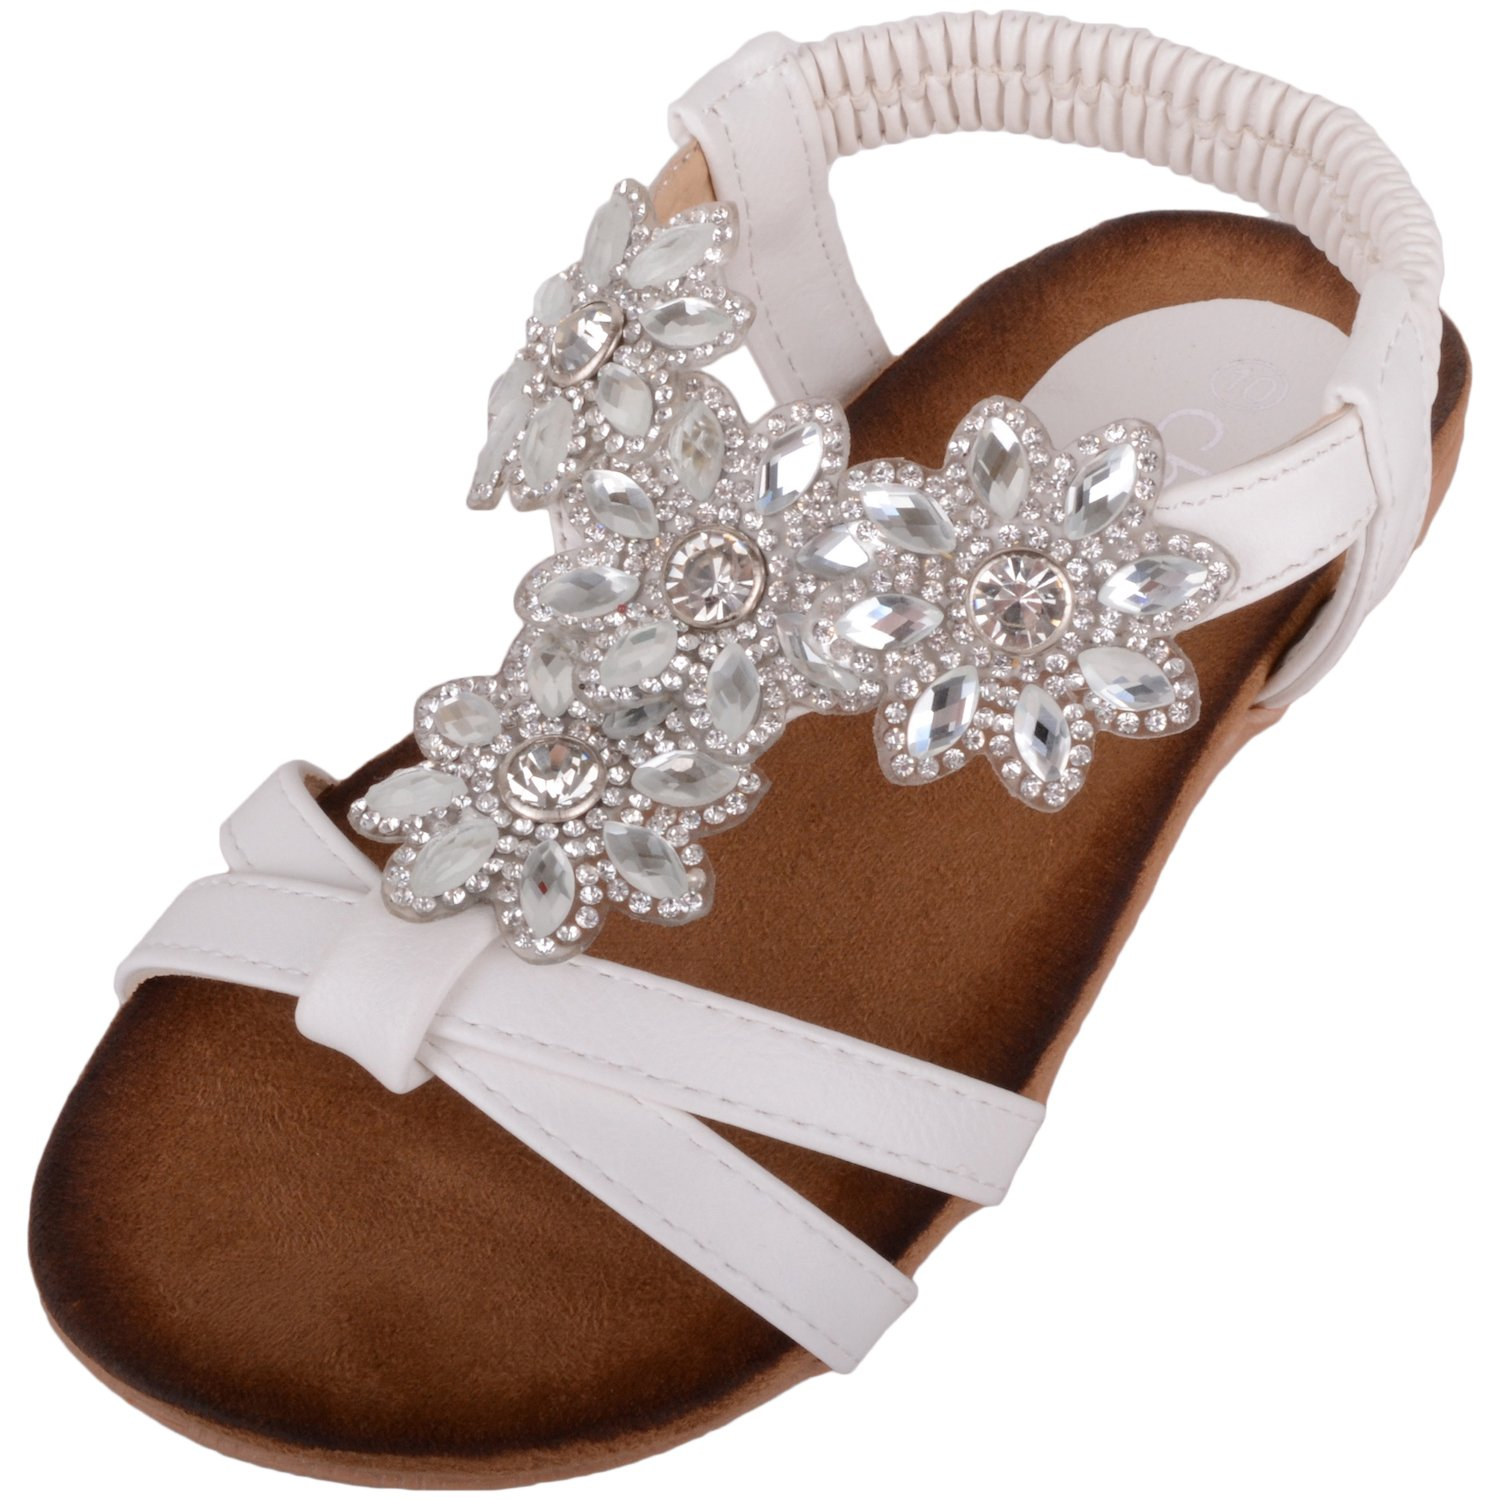 Absolute Footwear Childrens/Kids/Girls Summer/Holiday Sandals/Shoes with Floral Diamonte Pattern